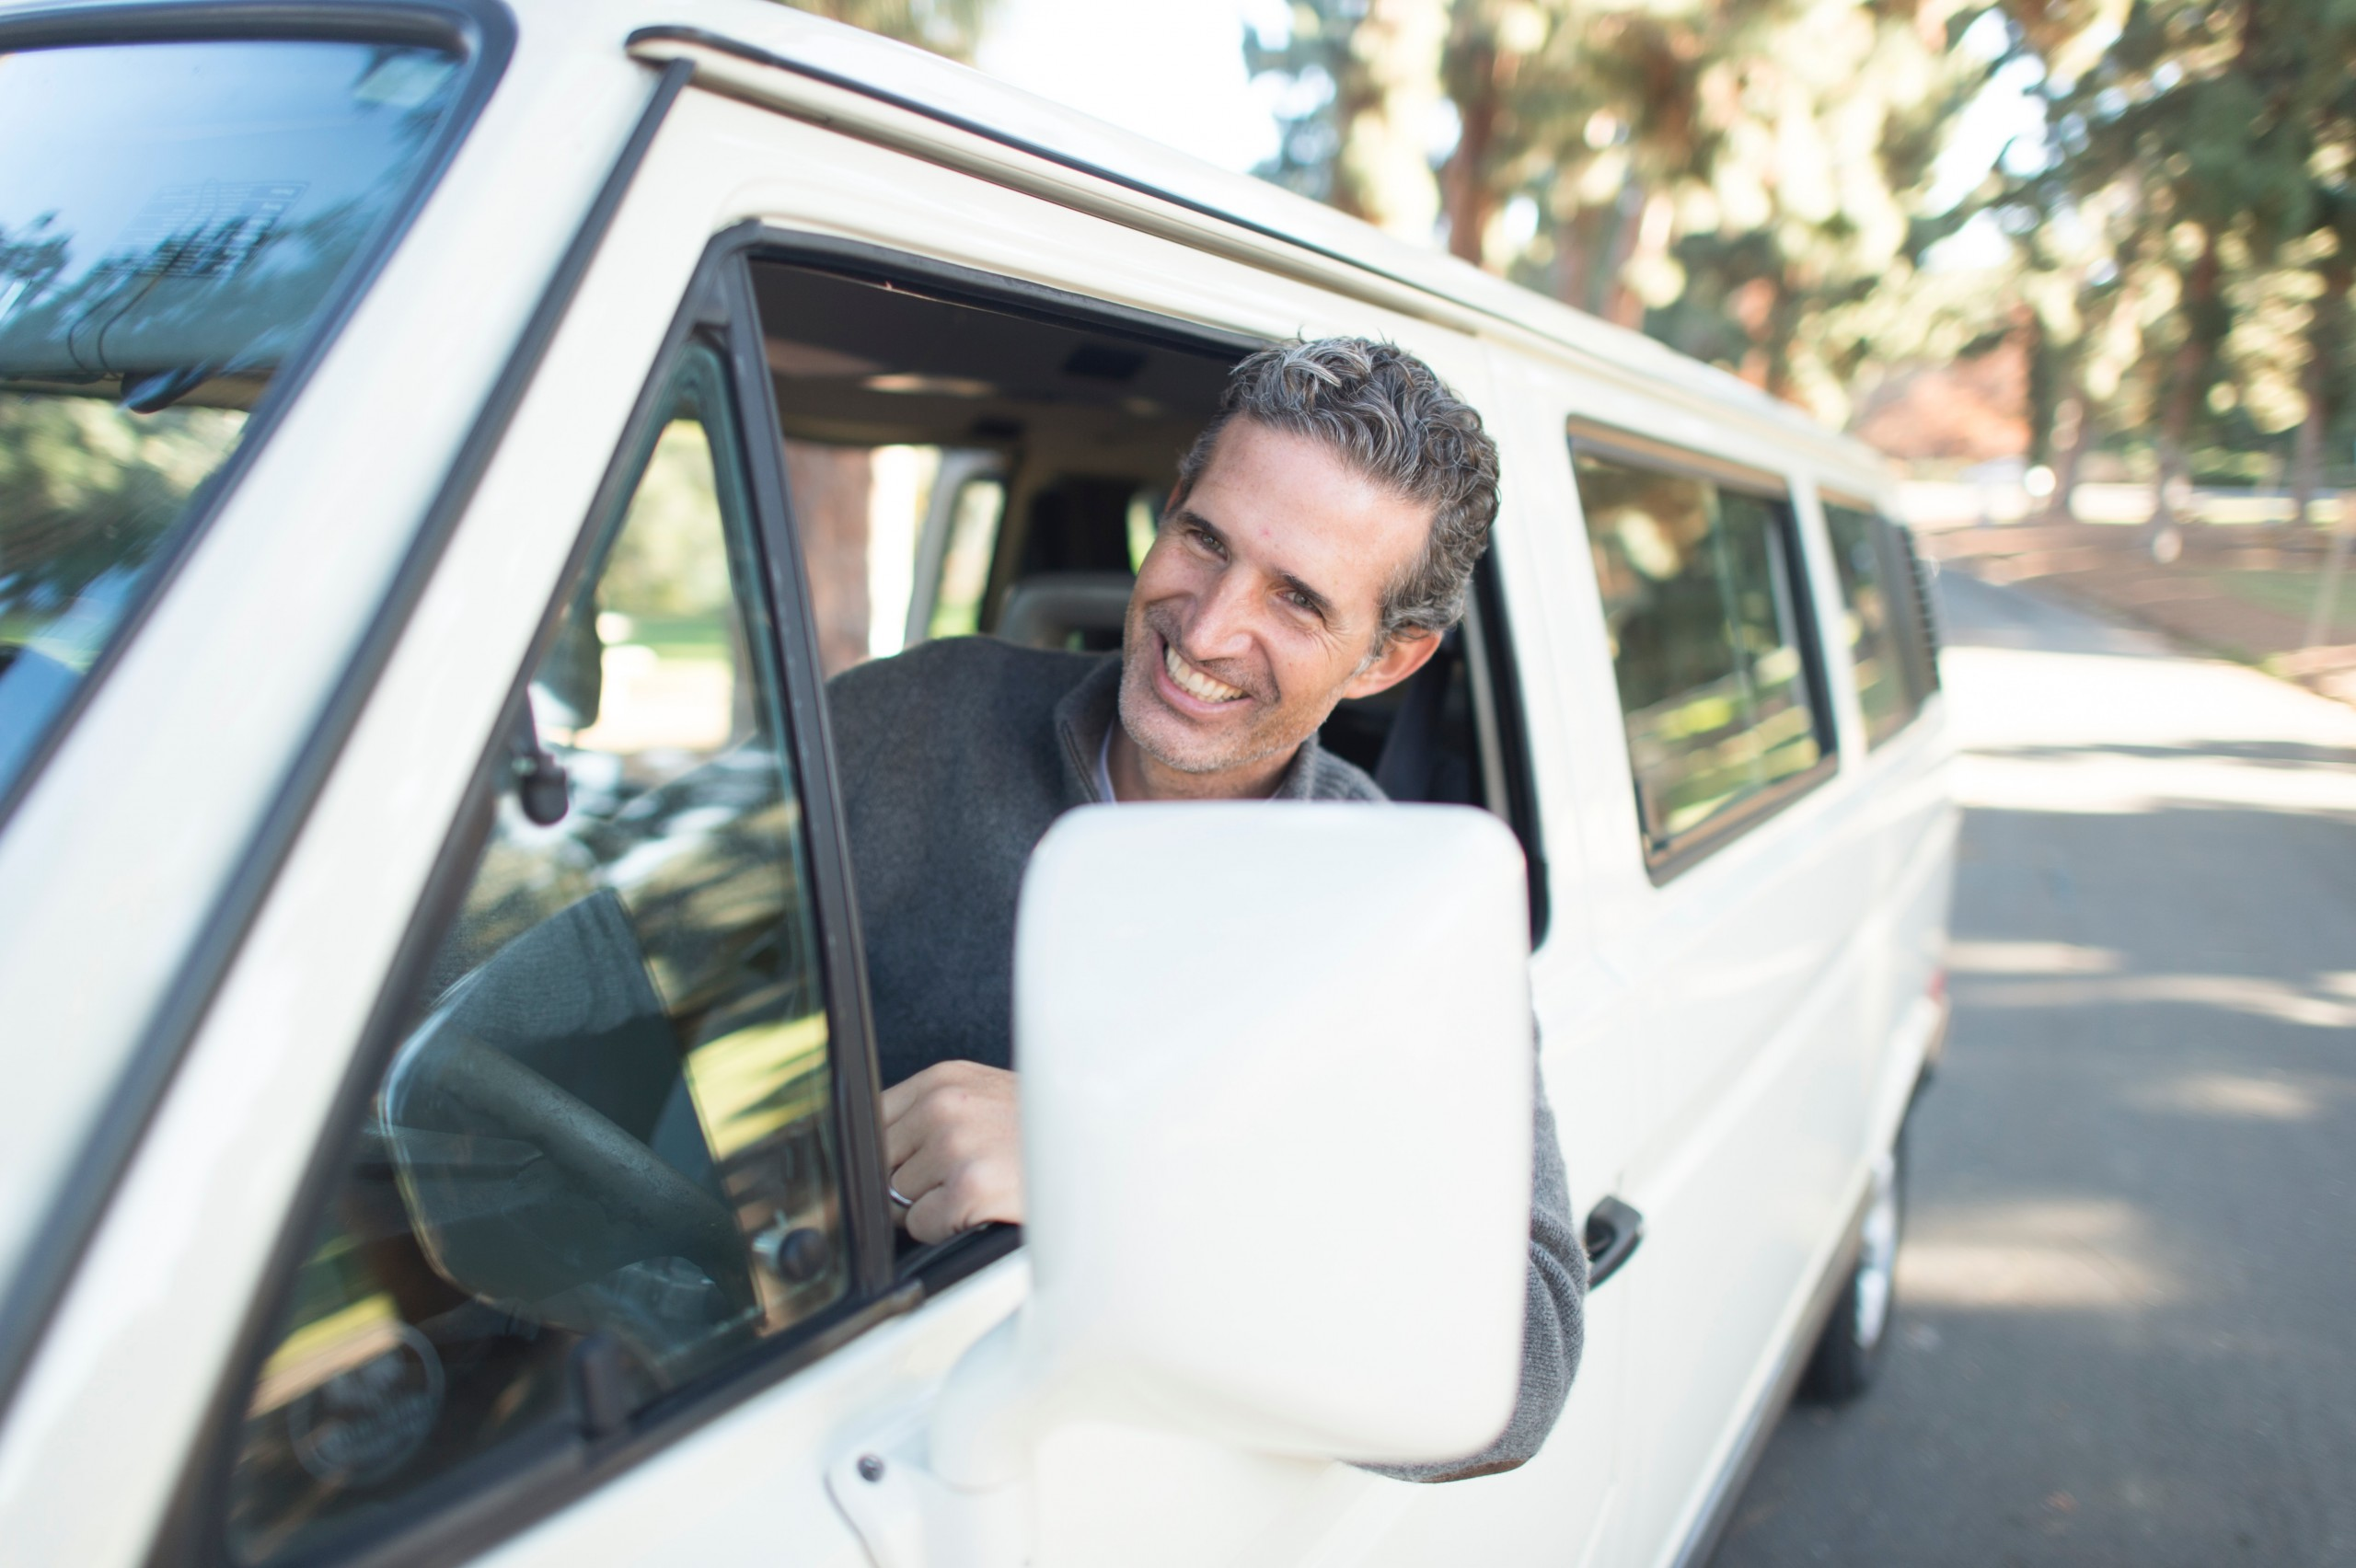 Stress-free parent who carpools